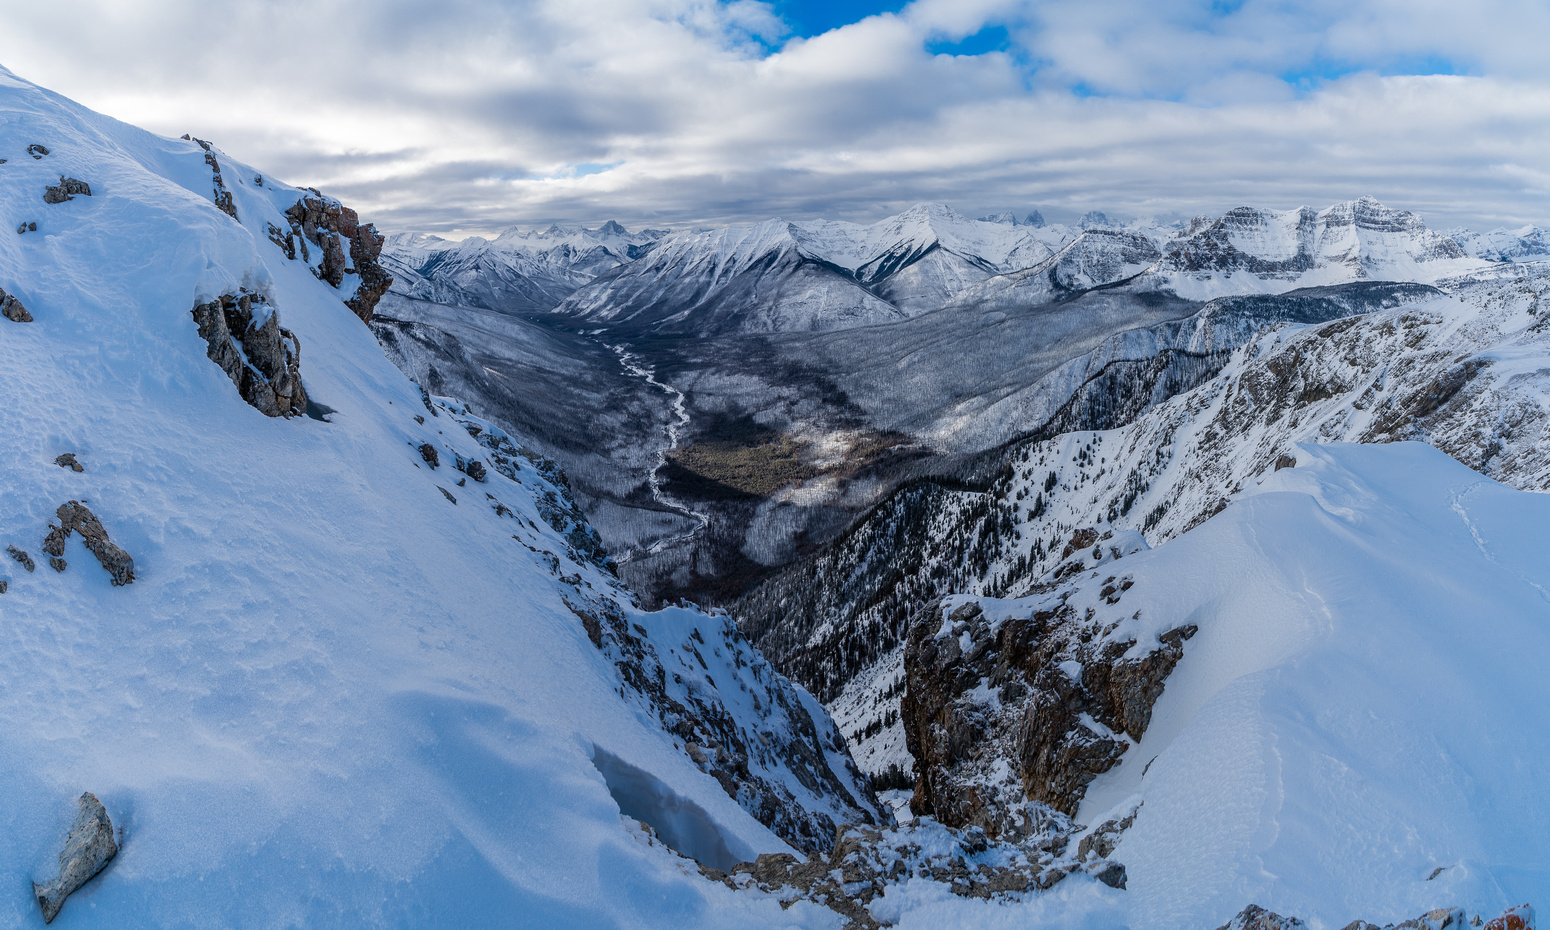 Incredible views down the recently charred Simpson River valley looking past Mount Shanks and directly towards Split Peak